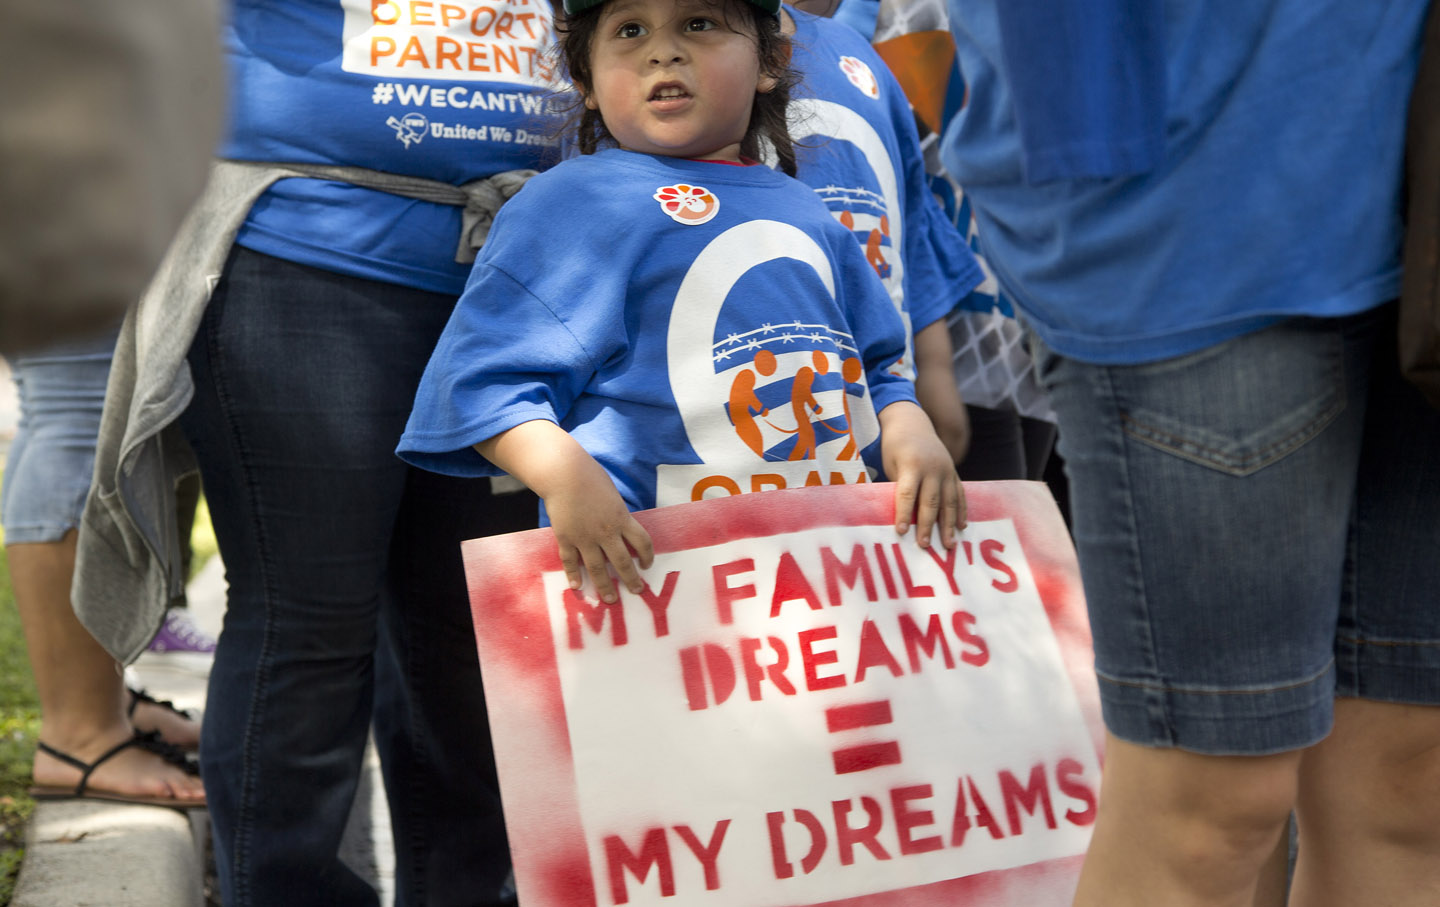 Miguel Nunez holds a sign demanding immigration reform in Deerfield Beach, Fla, Wednesday, Aug. 20, 2014.